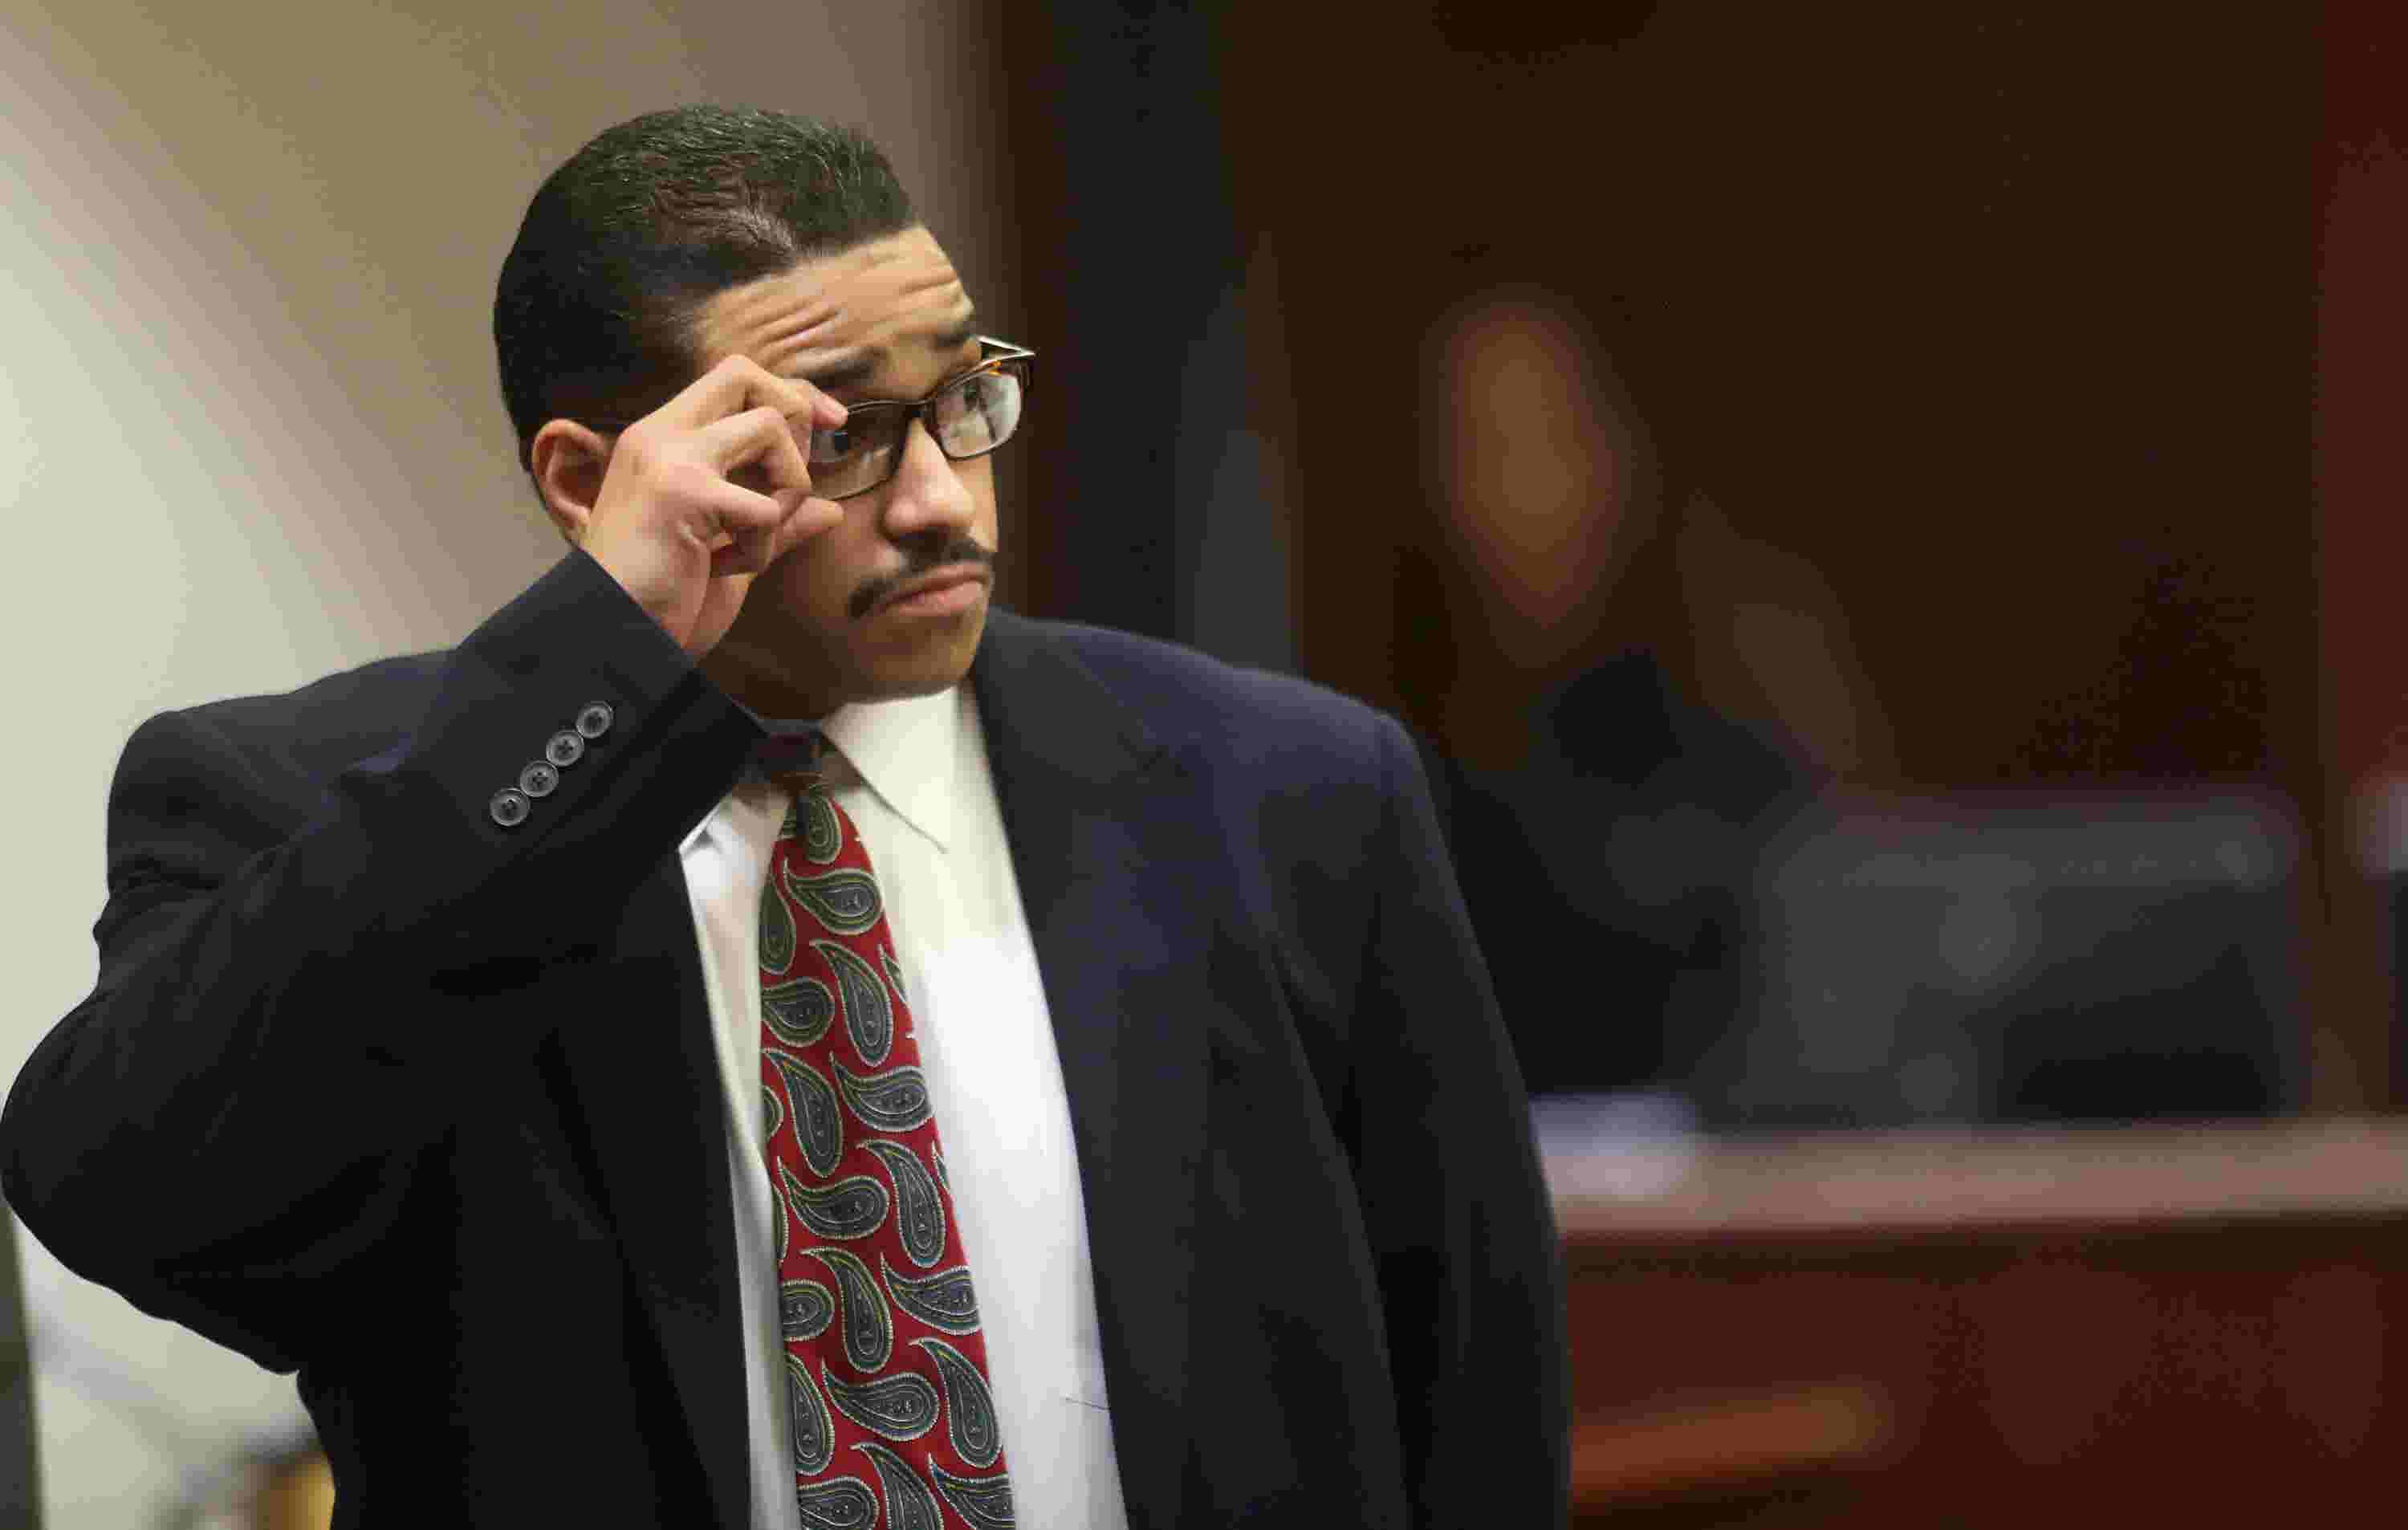 Fellow officers recount grief as jury considers punishment for convicted cop killer